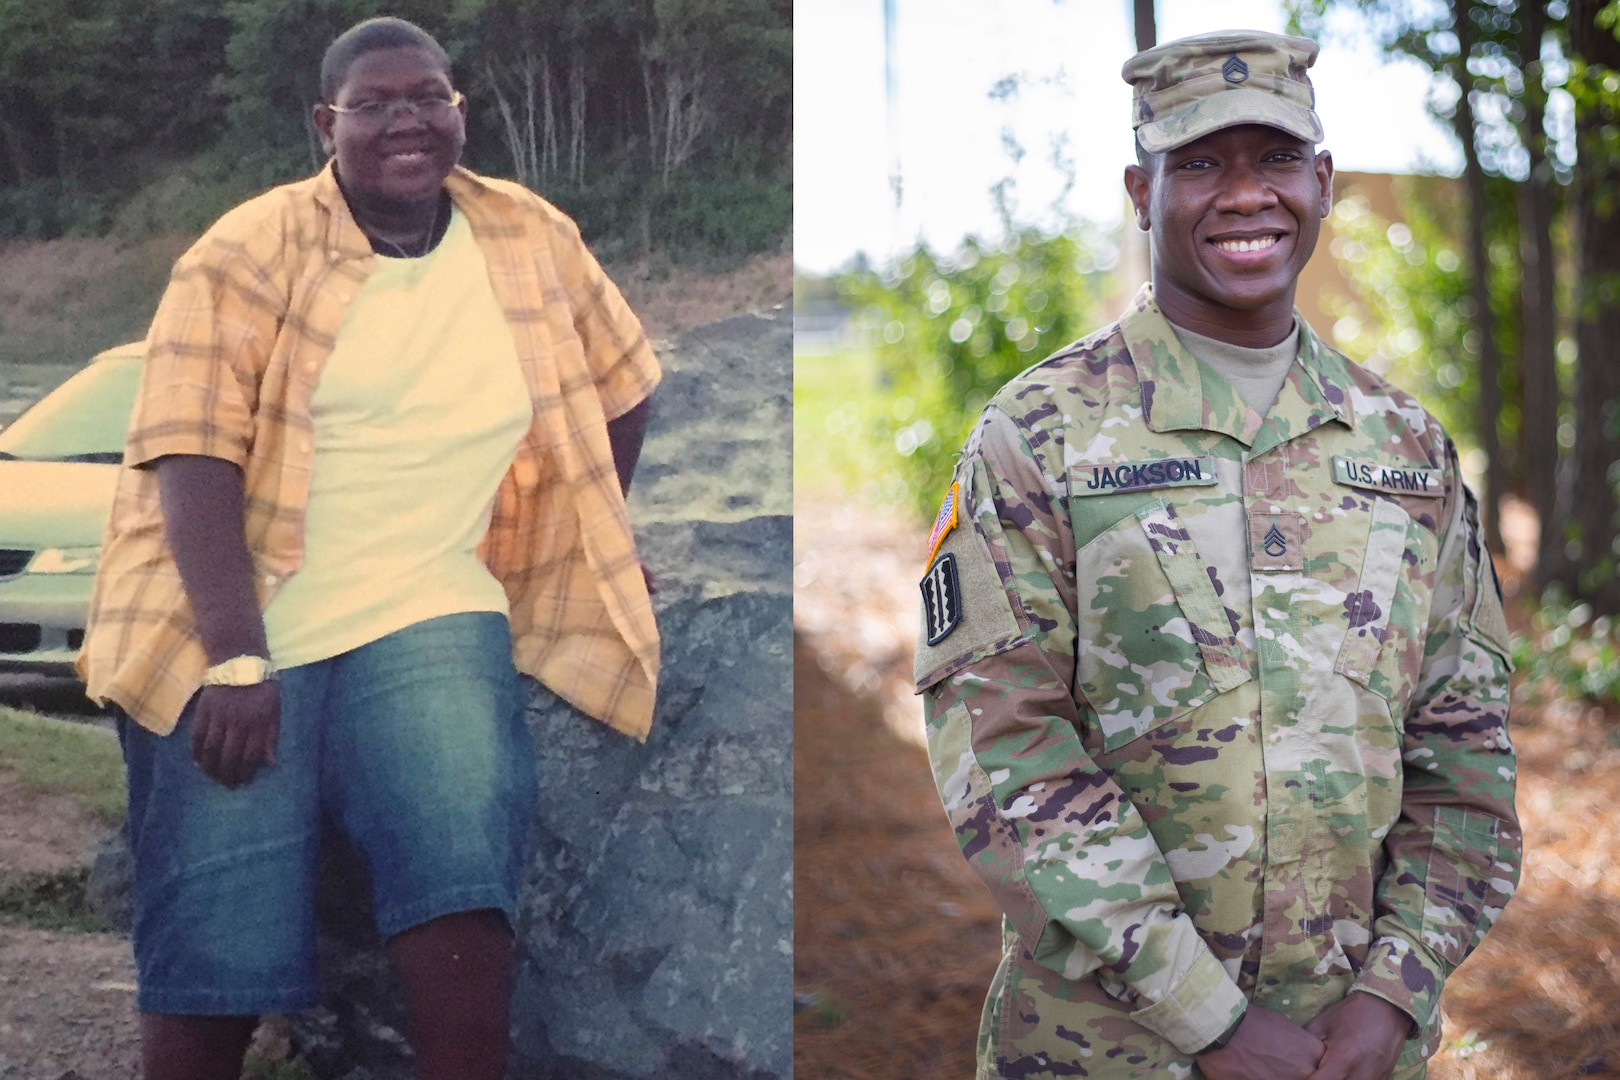 Staff Sgt. Roger Jackson, assigned to the 183rd Regional Regiment, Training Institute, weighed 250 lbs at the age of 17 (left), lost 80 lbs and today maintains a high-level of physical and mental toughness through regular and consistent training.